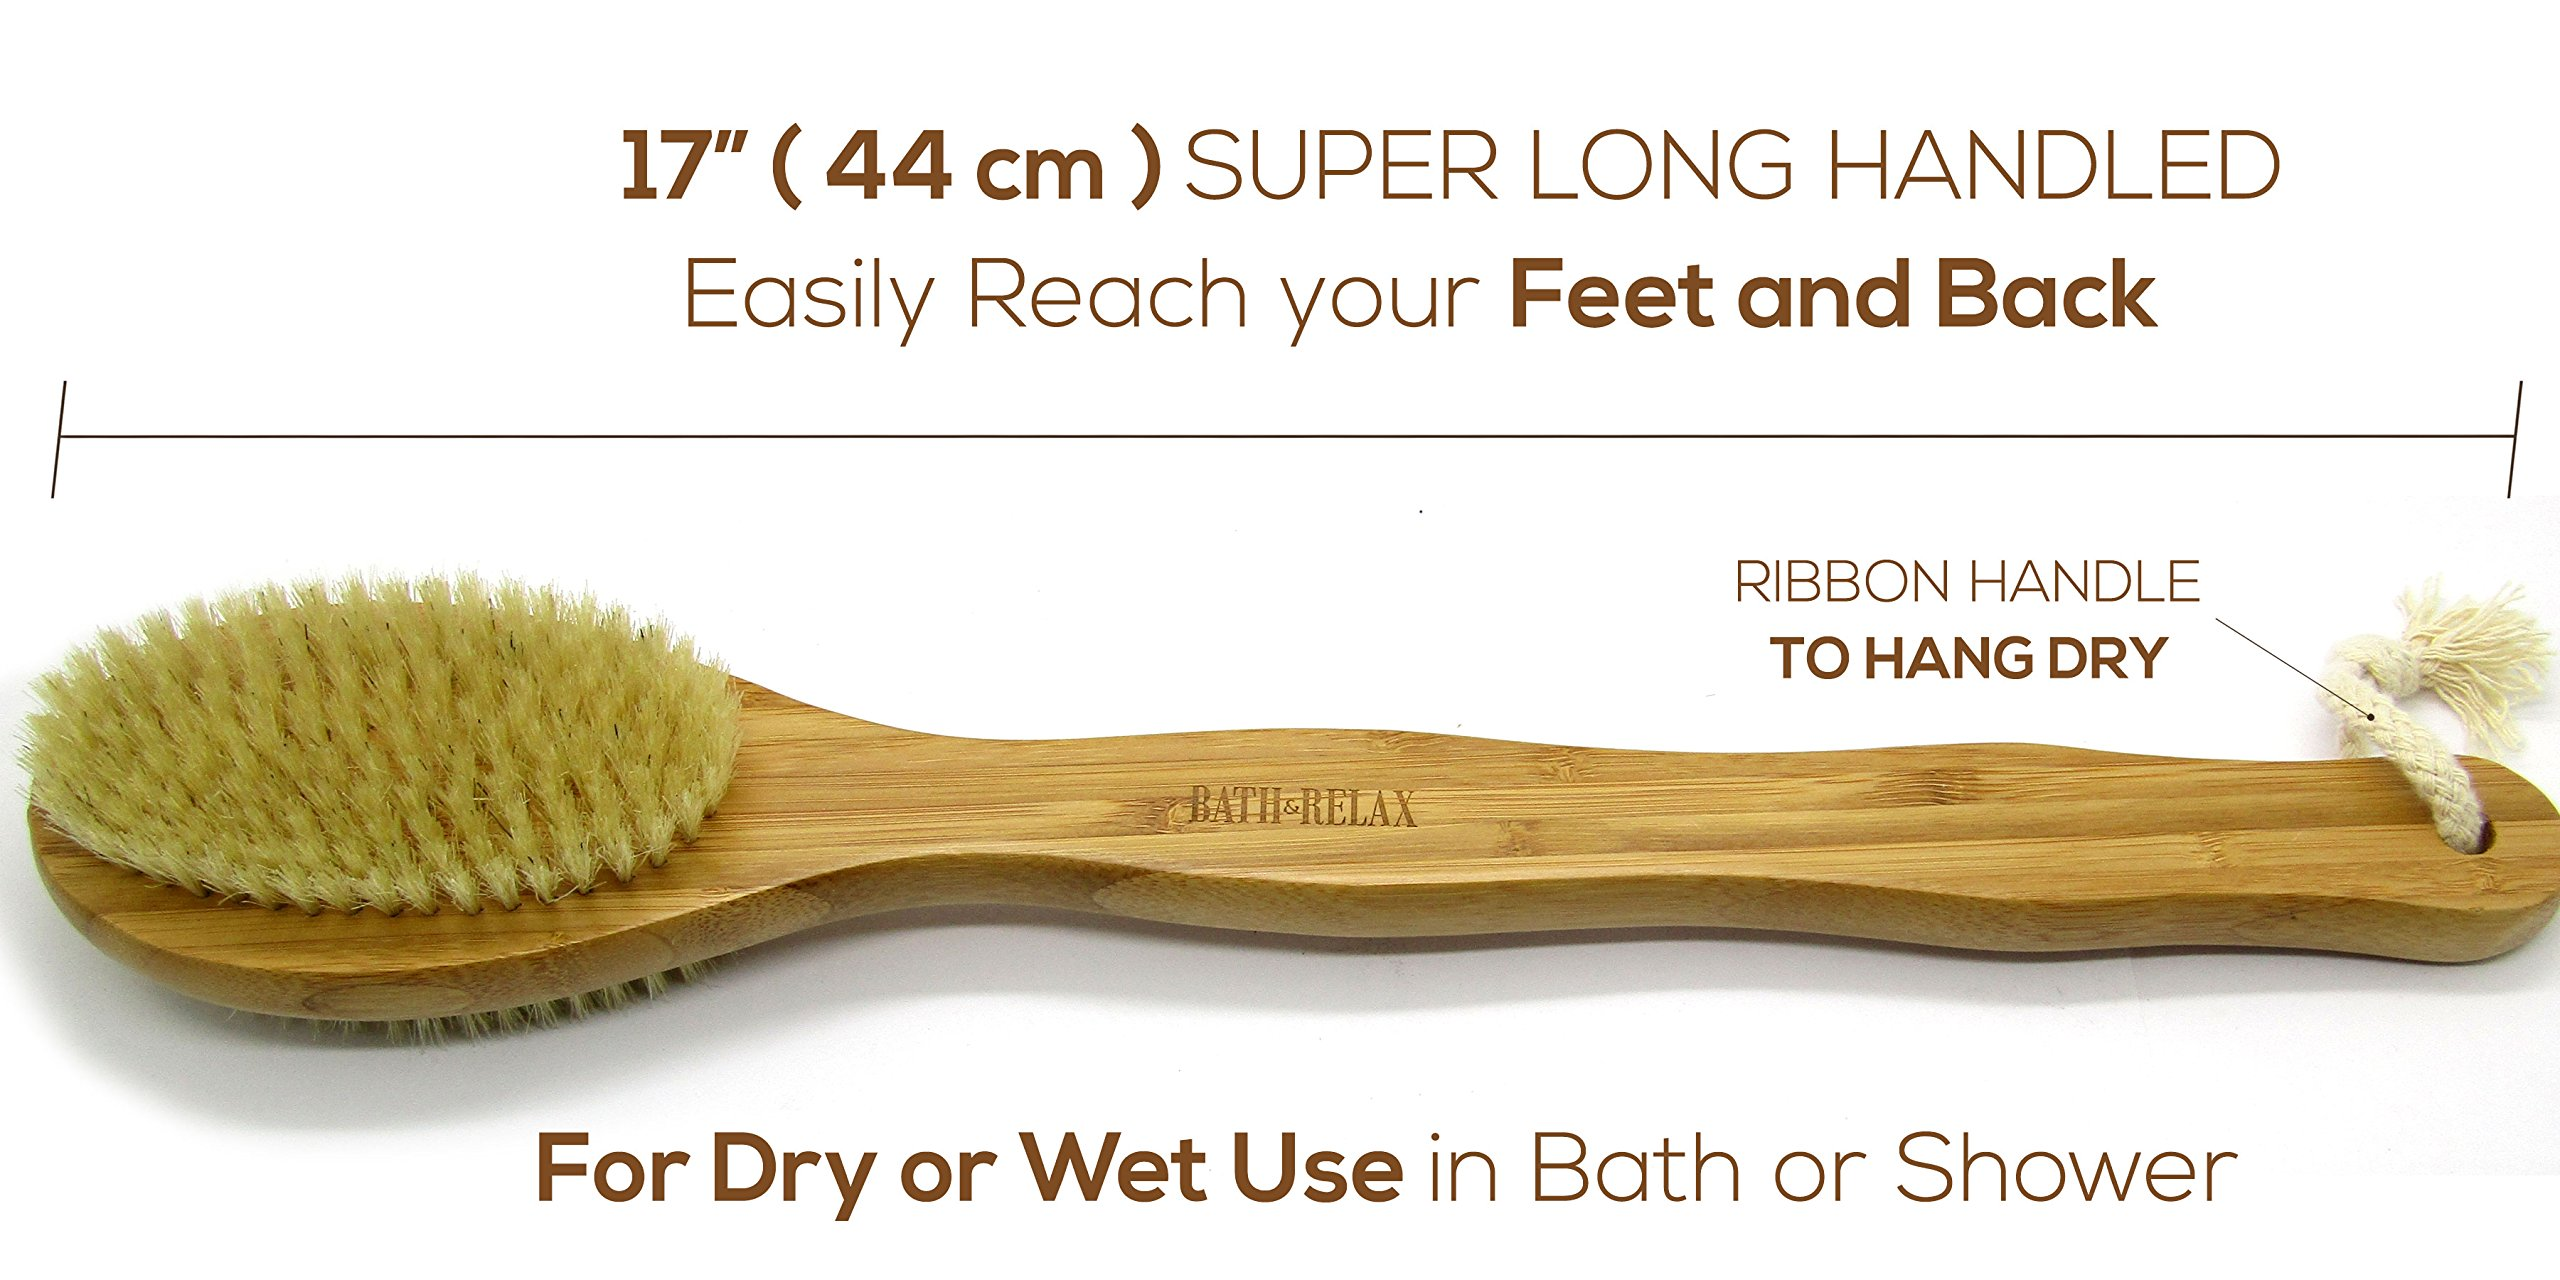 Bath & Relax Bamboo Bath Brush Long 17'' Handle Back Body Scrubber For shower dry/Wet Skin brushing Suitable for men/women by Bath & Relax (Image #5)